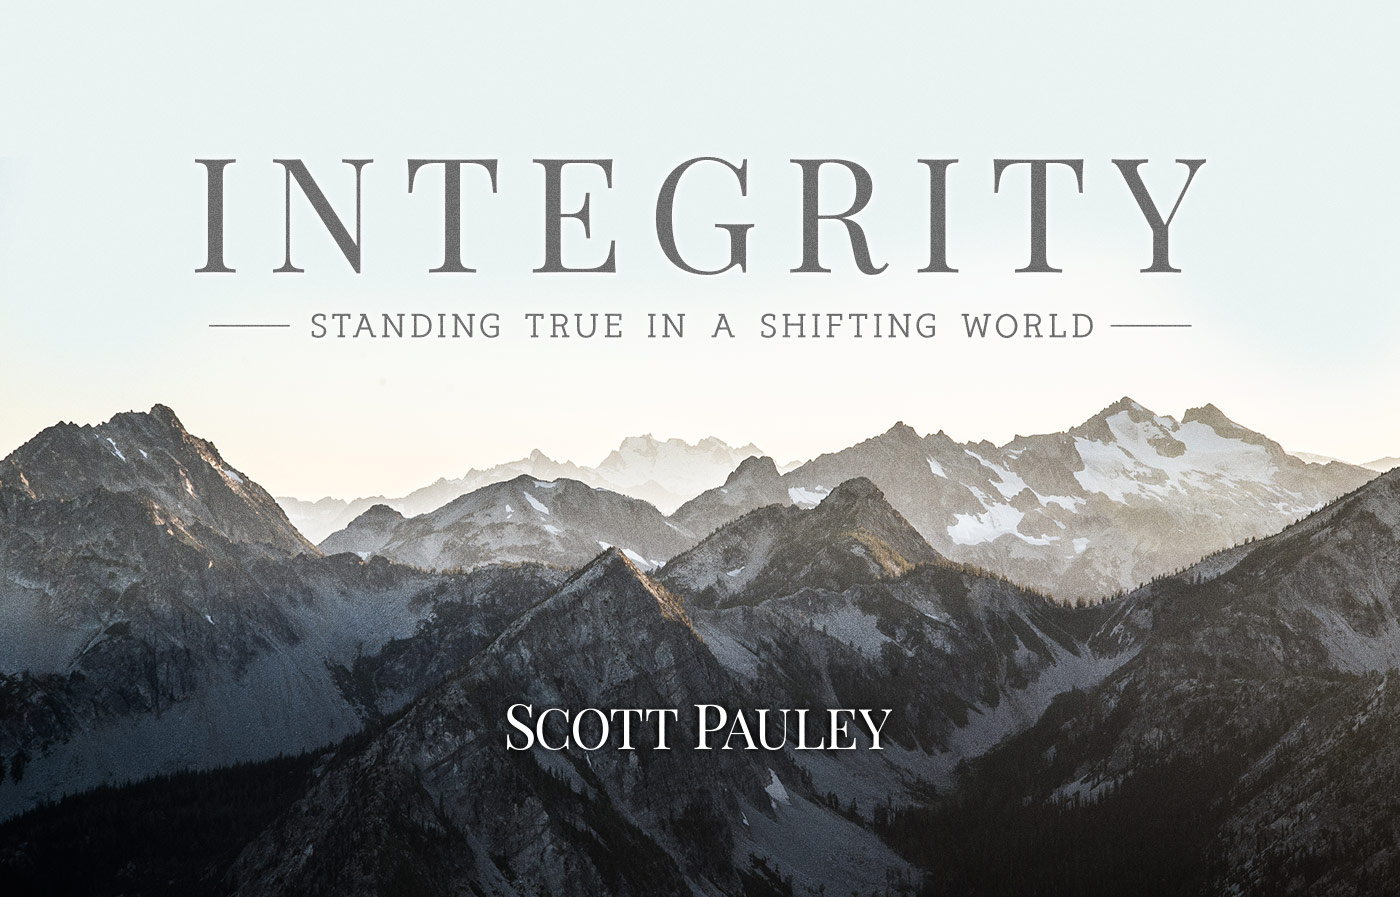 Integrity Standing True in a Shifting World